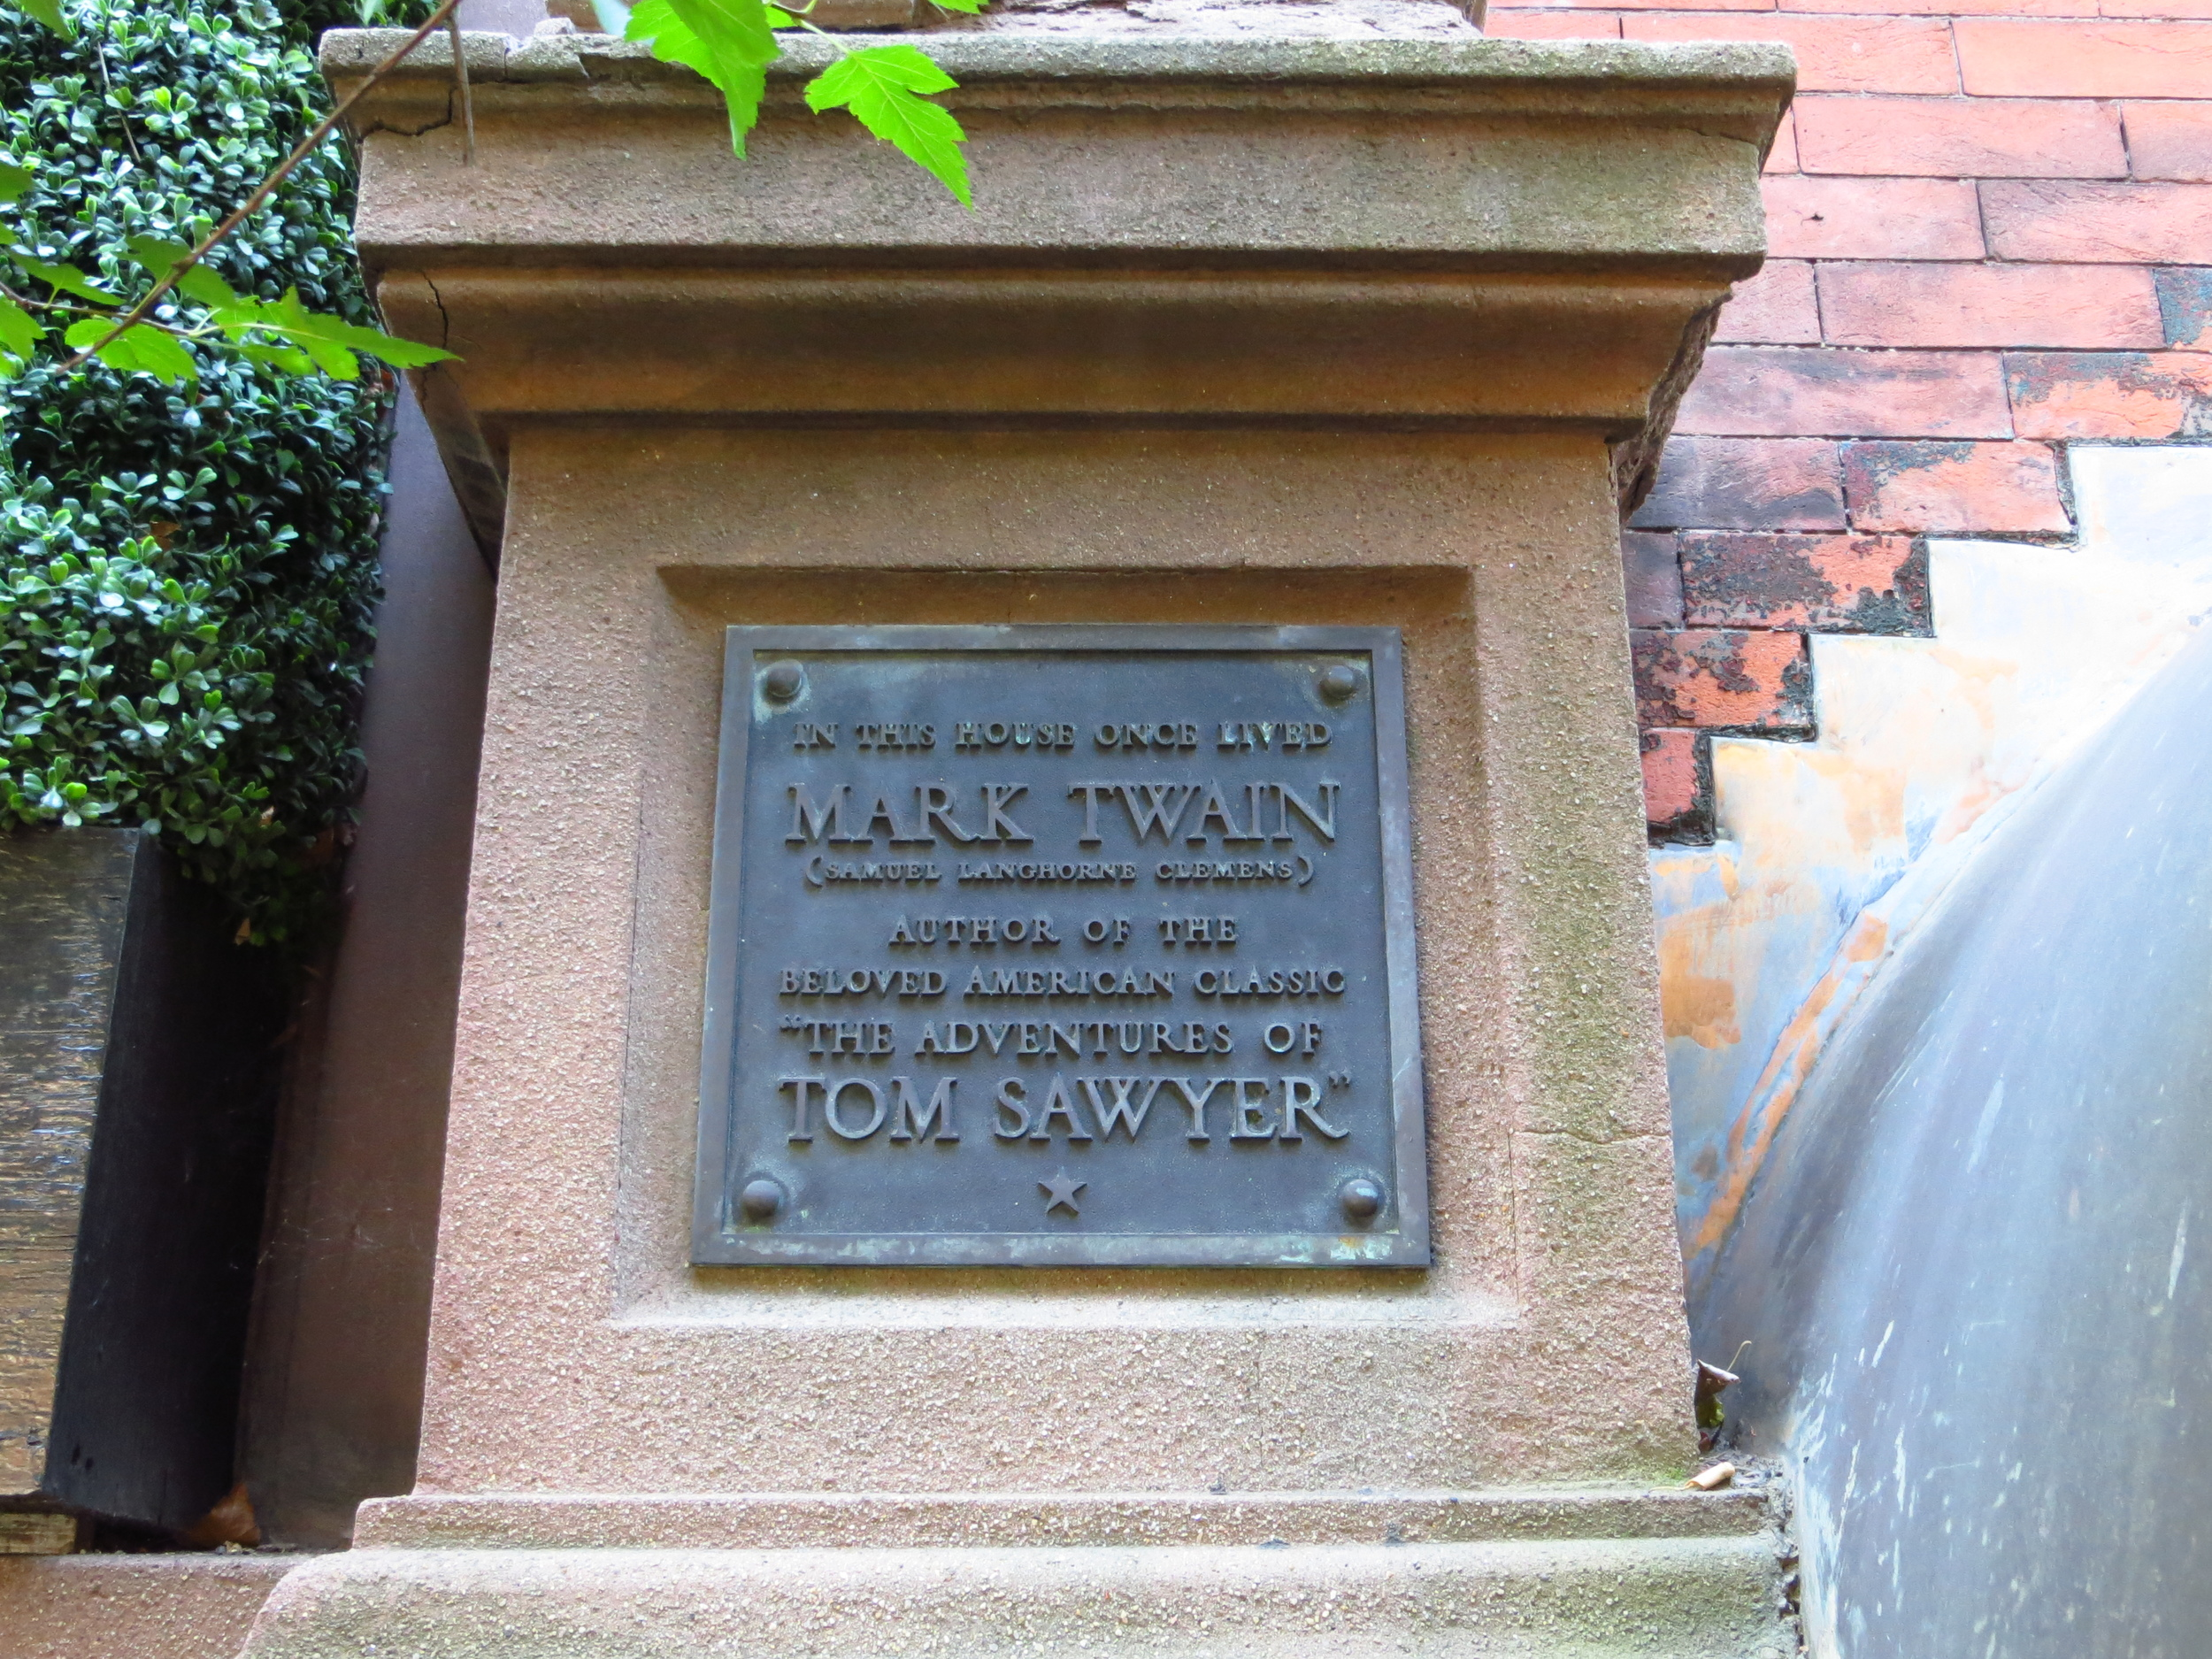 ...also Mark Twain lived there